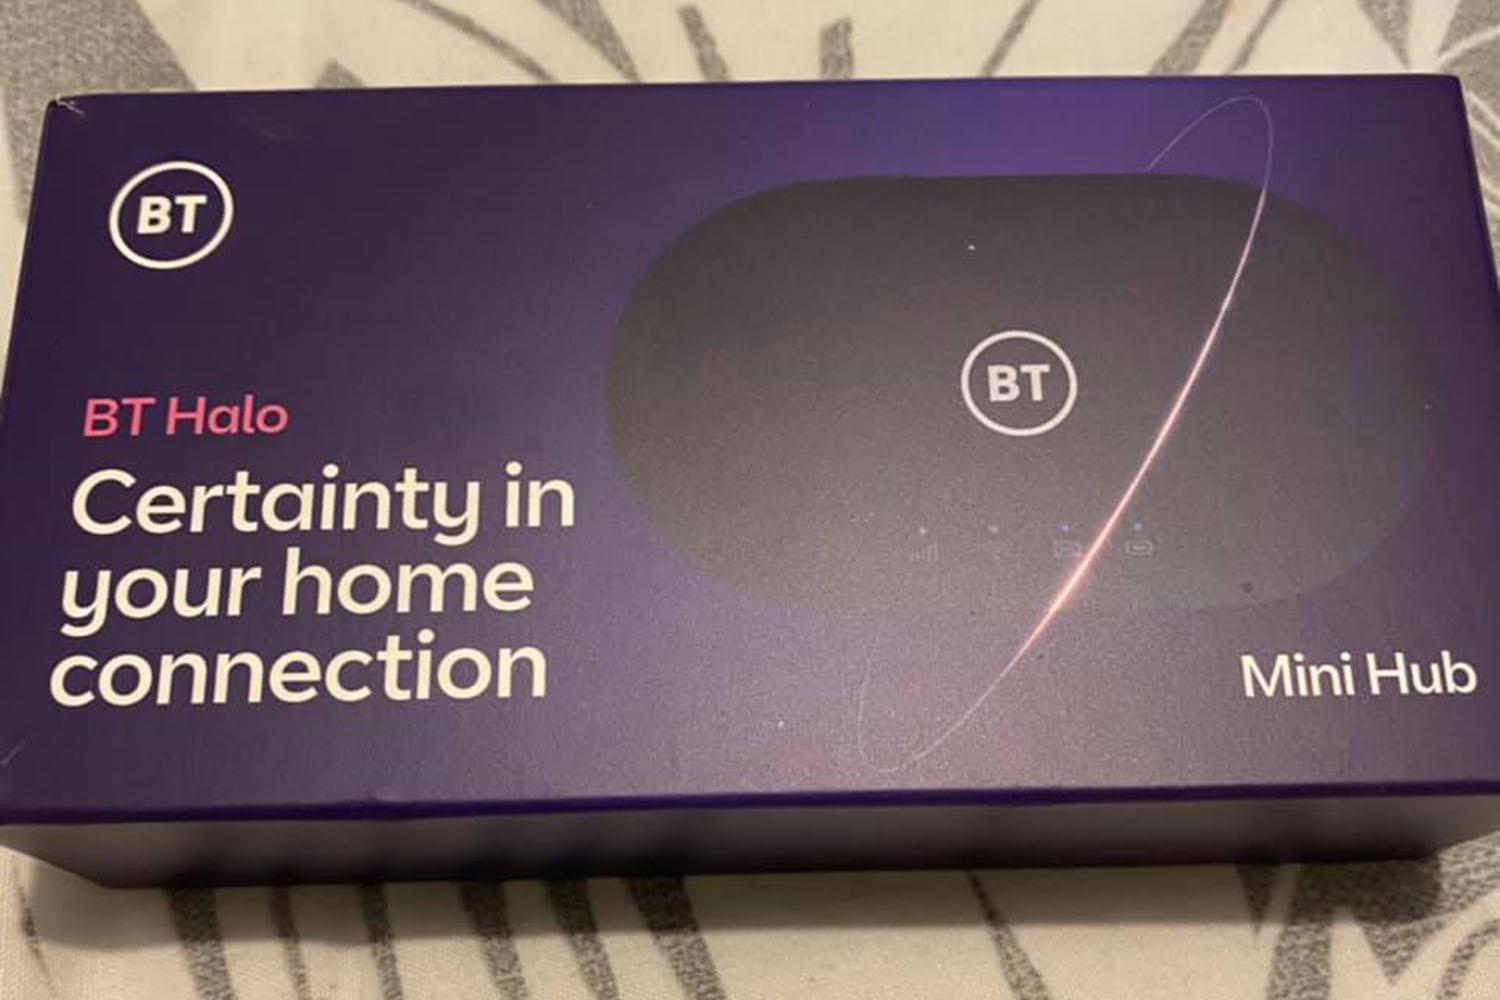 A bargain hunter issued the reminder of the service to other BT customers